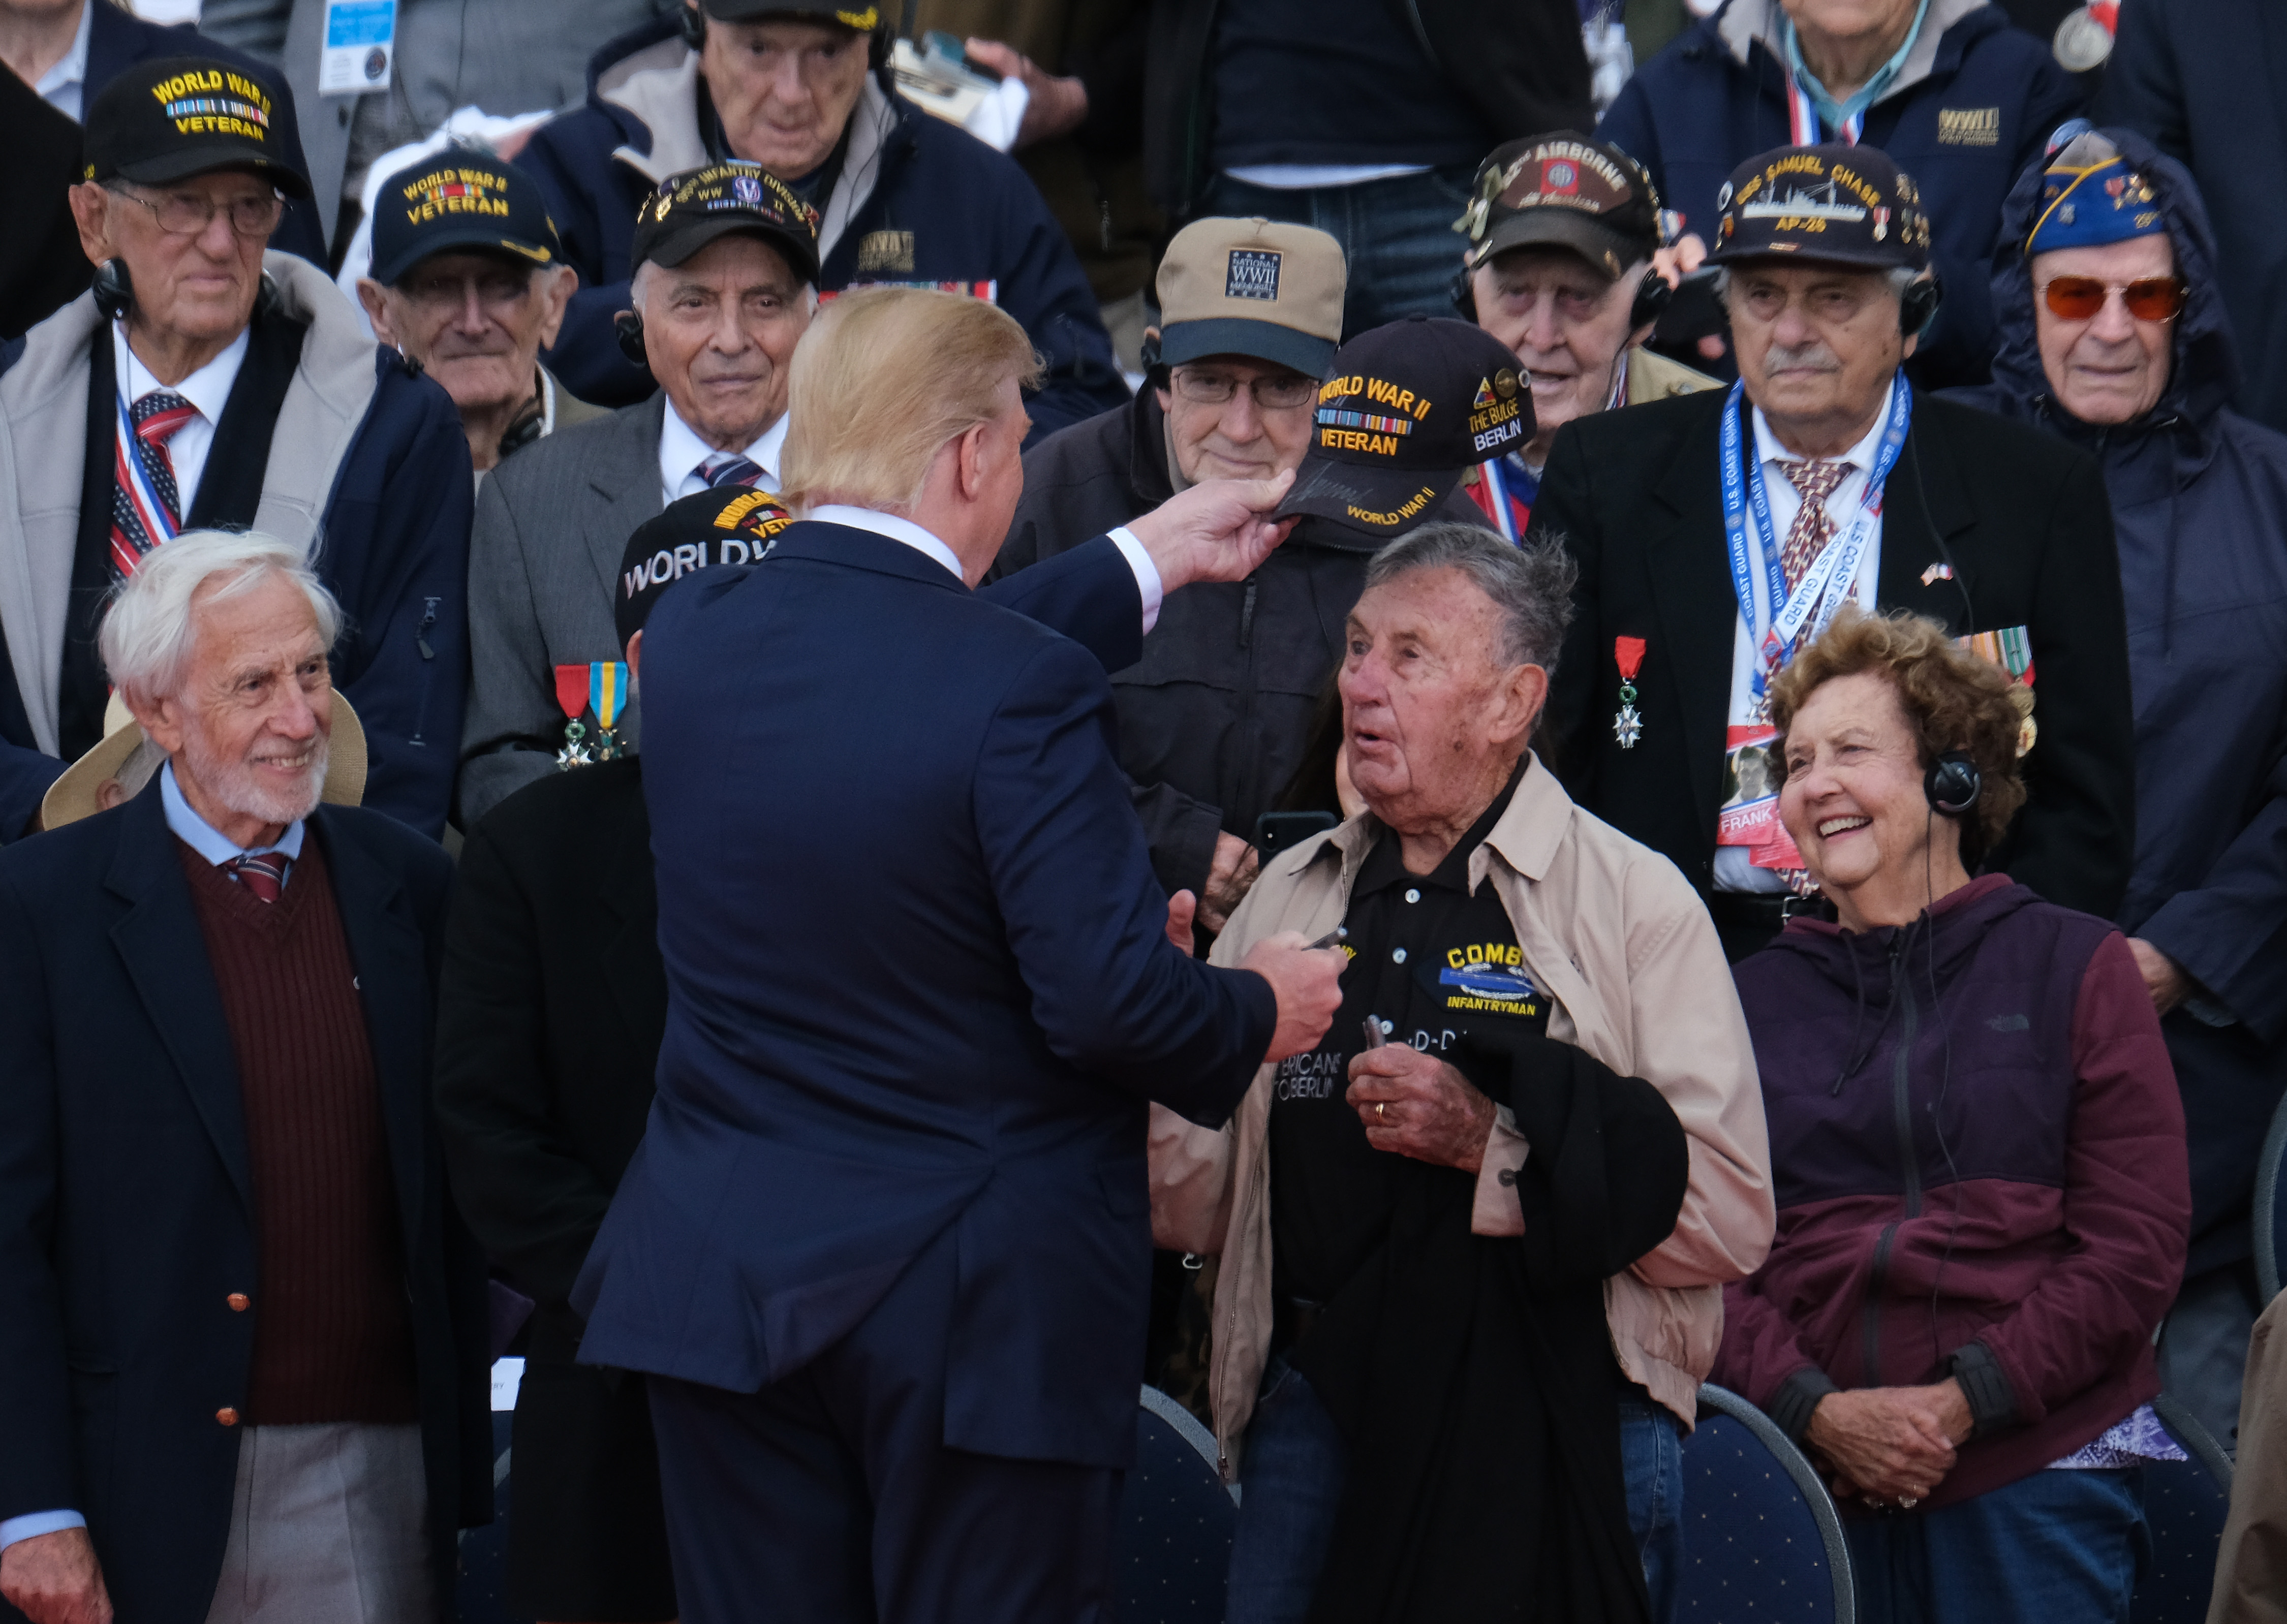 U.S. President Donald Trump tips the cap of a U.S. veteran of the Battle of Normandy as other veterans look on during the main ceremony to mark the 75th anniversary of the World War II Allied D-Day invasion of Normandy at Normandy American Cemetery on June 06, 2019. (Sean Gallup/Getty Images)